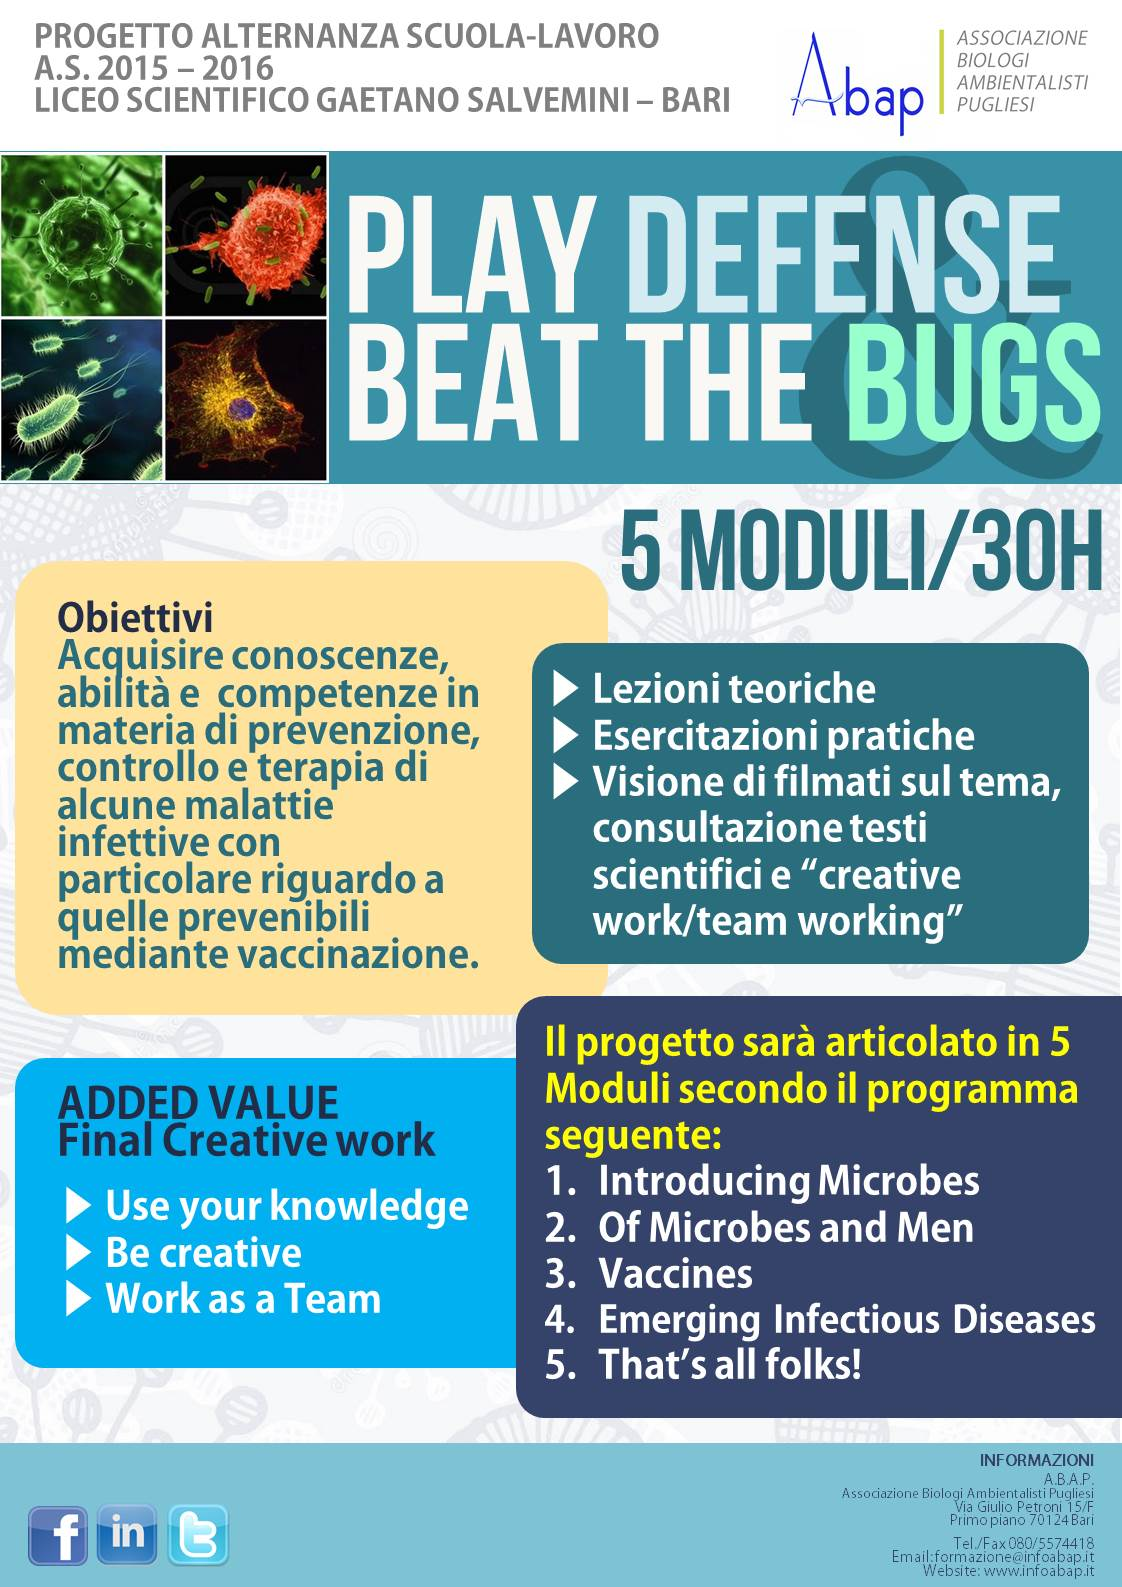 Locandina PLAY DEFENSE & BEAT THE BUGS_ABAP